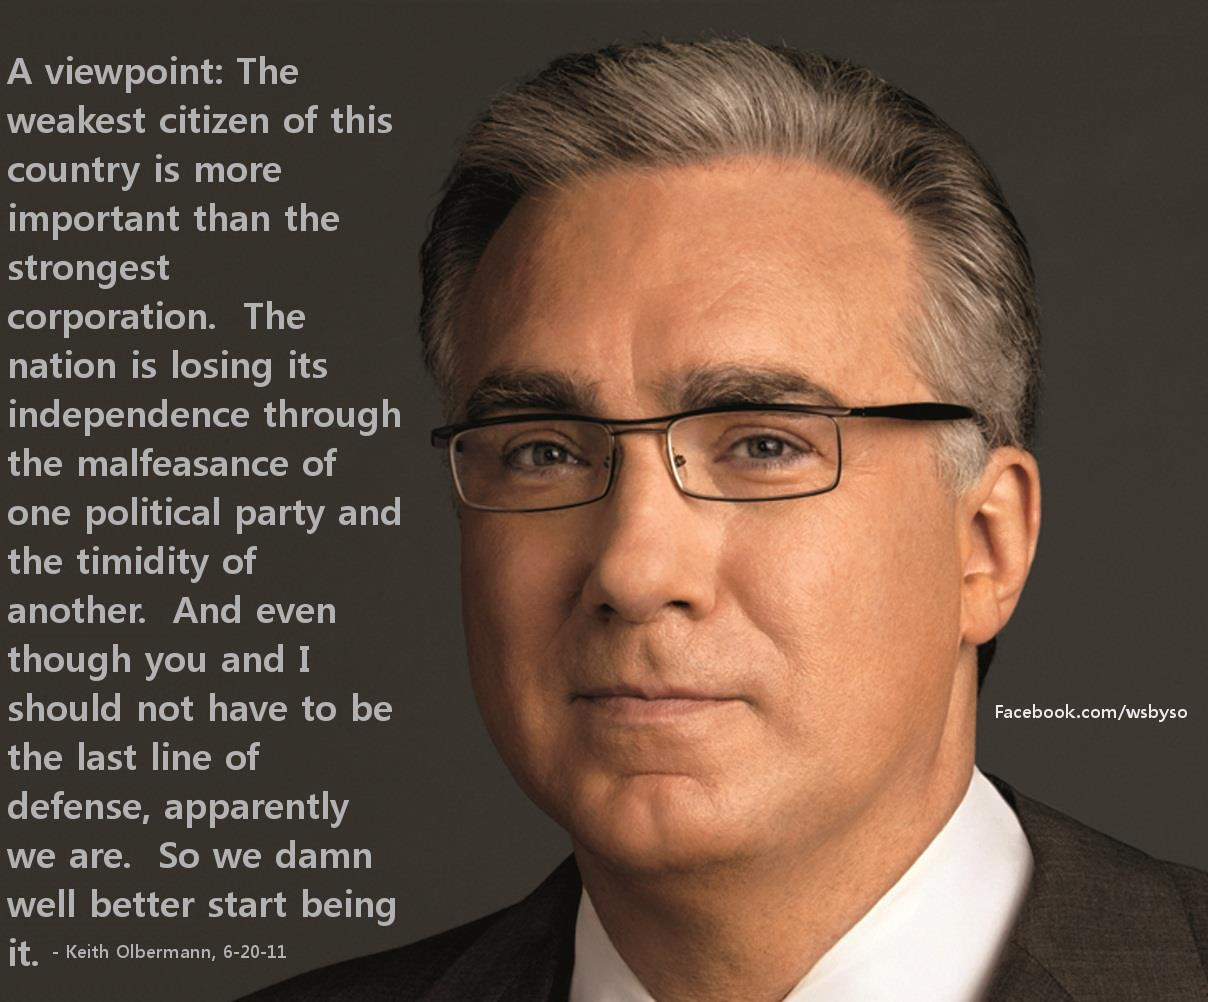 Keith Olbermann's quote #8